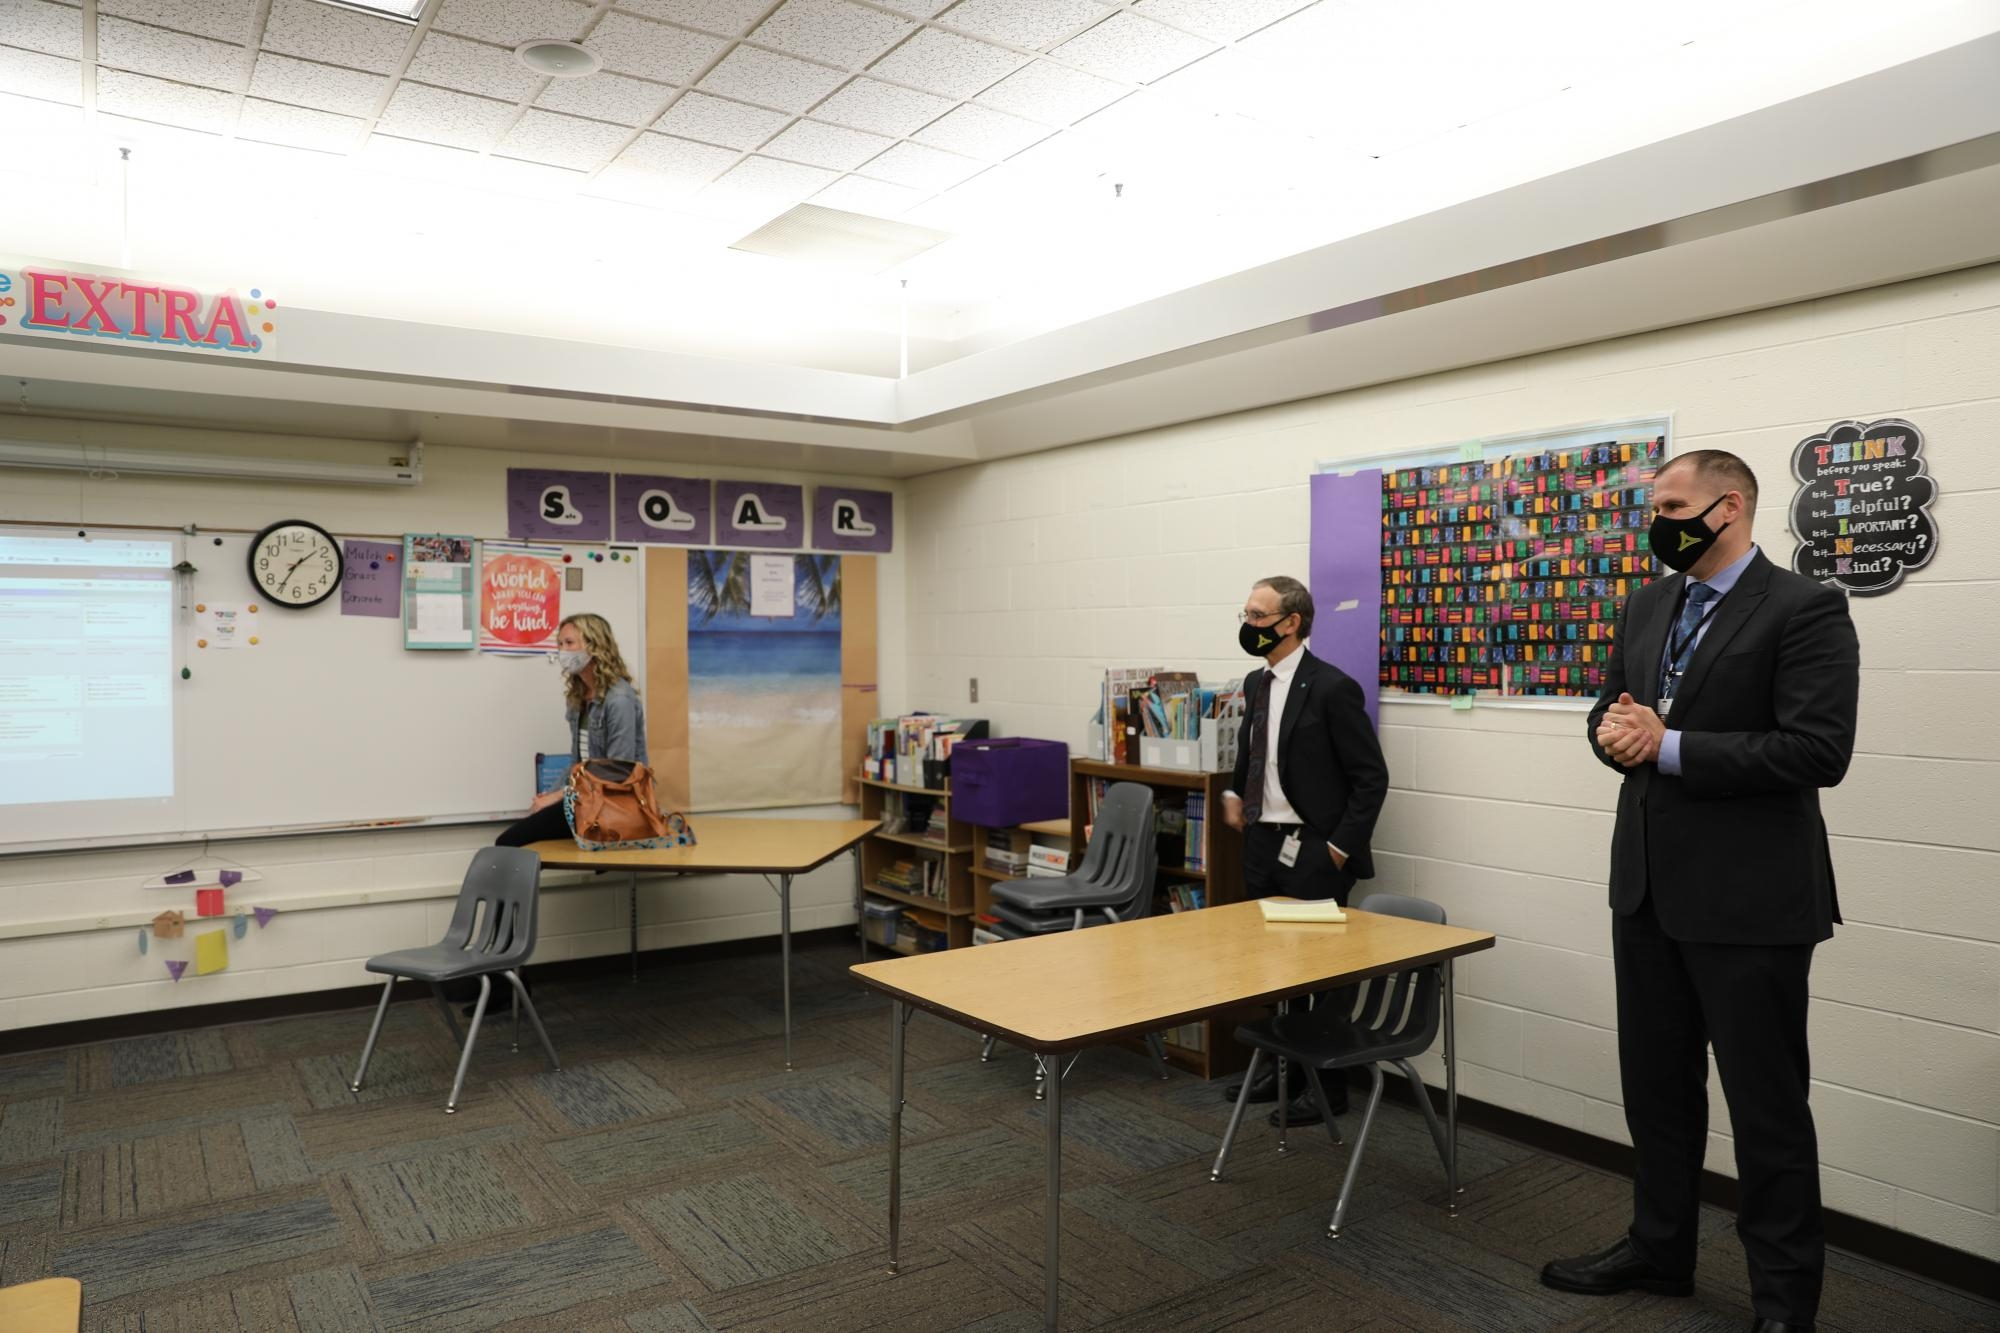 2020 Elementary Teacher of the Year Jessie Kinney, retiring HR Dir. Mike Lureman, and C.O.O. Aaron Leniski were on hand for the surprise. Mr. Leniski was a student in Mrs. Shreiner's first class when she first started at Elm Road in 1989.